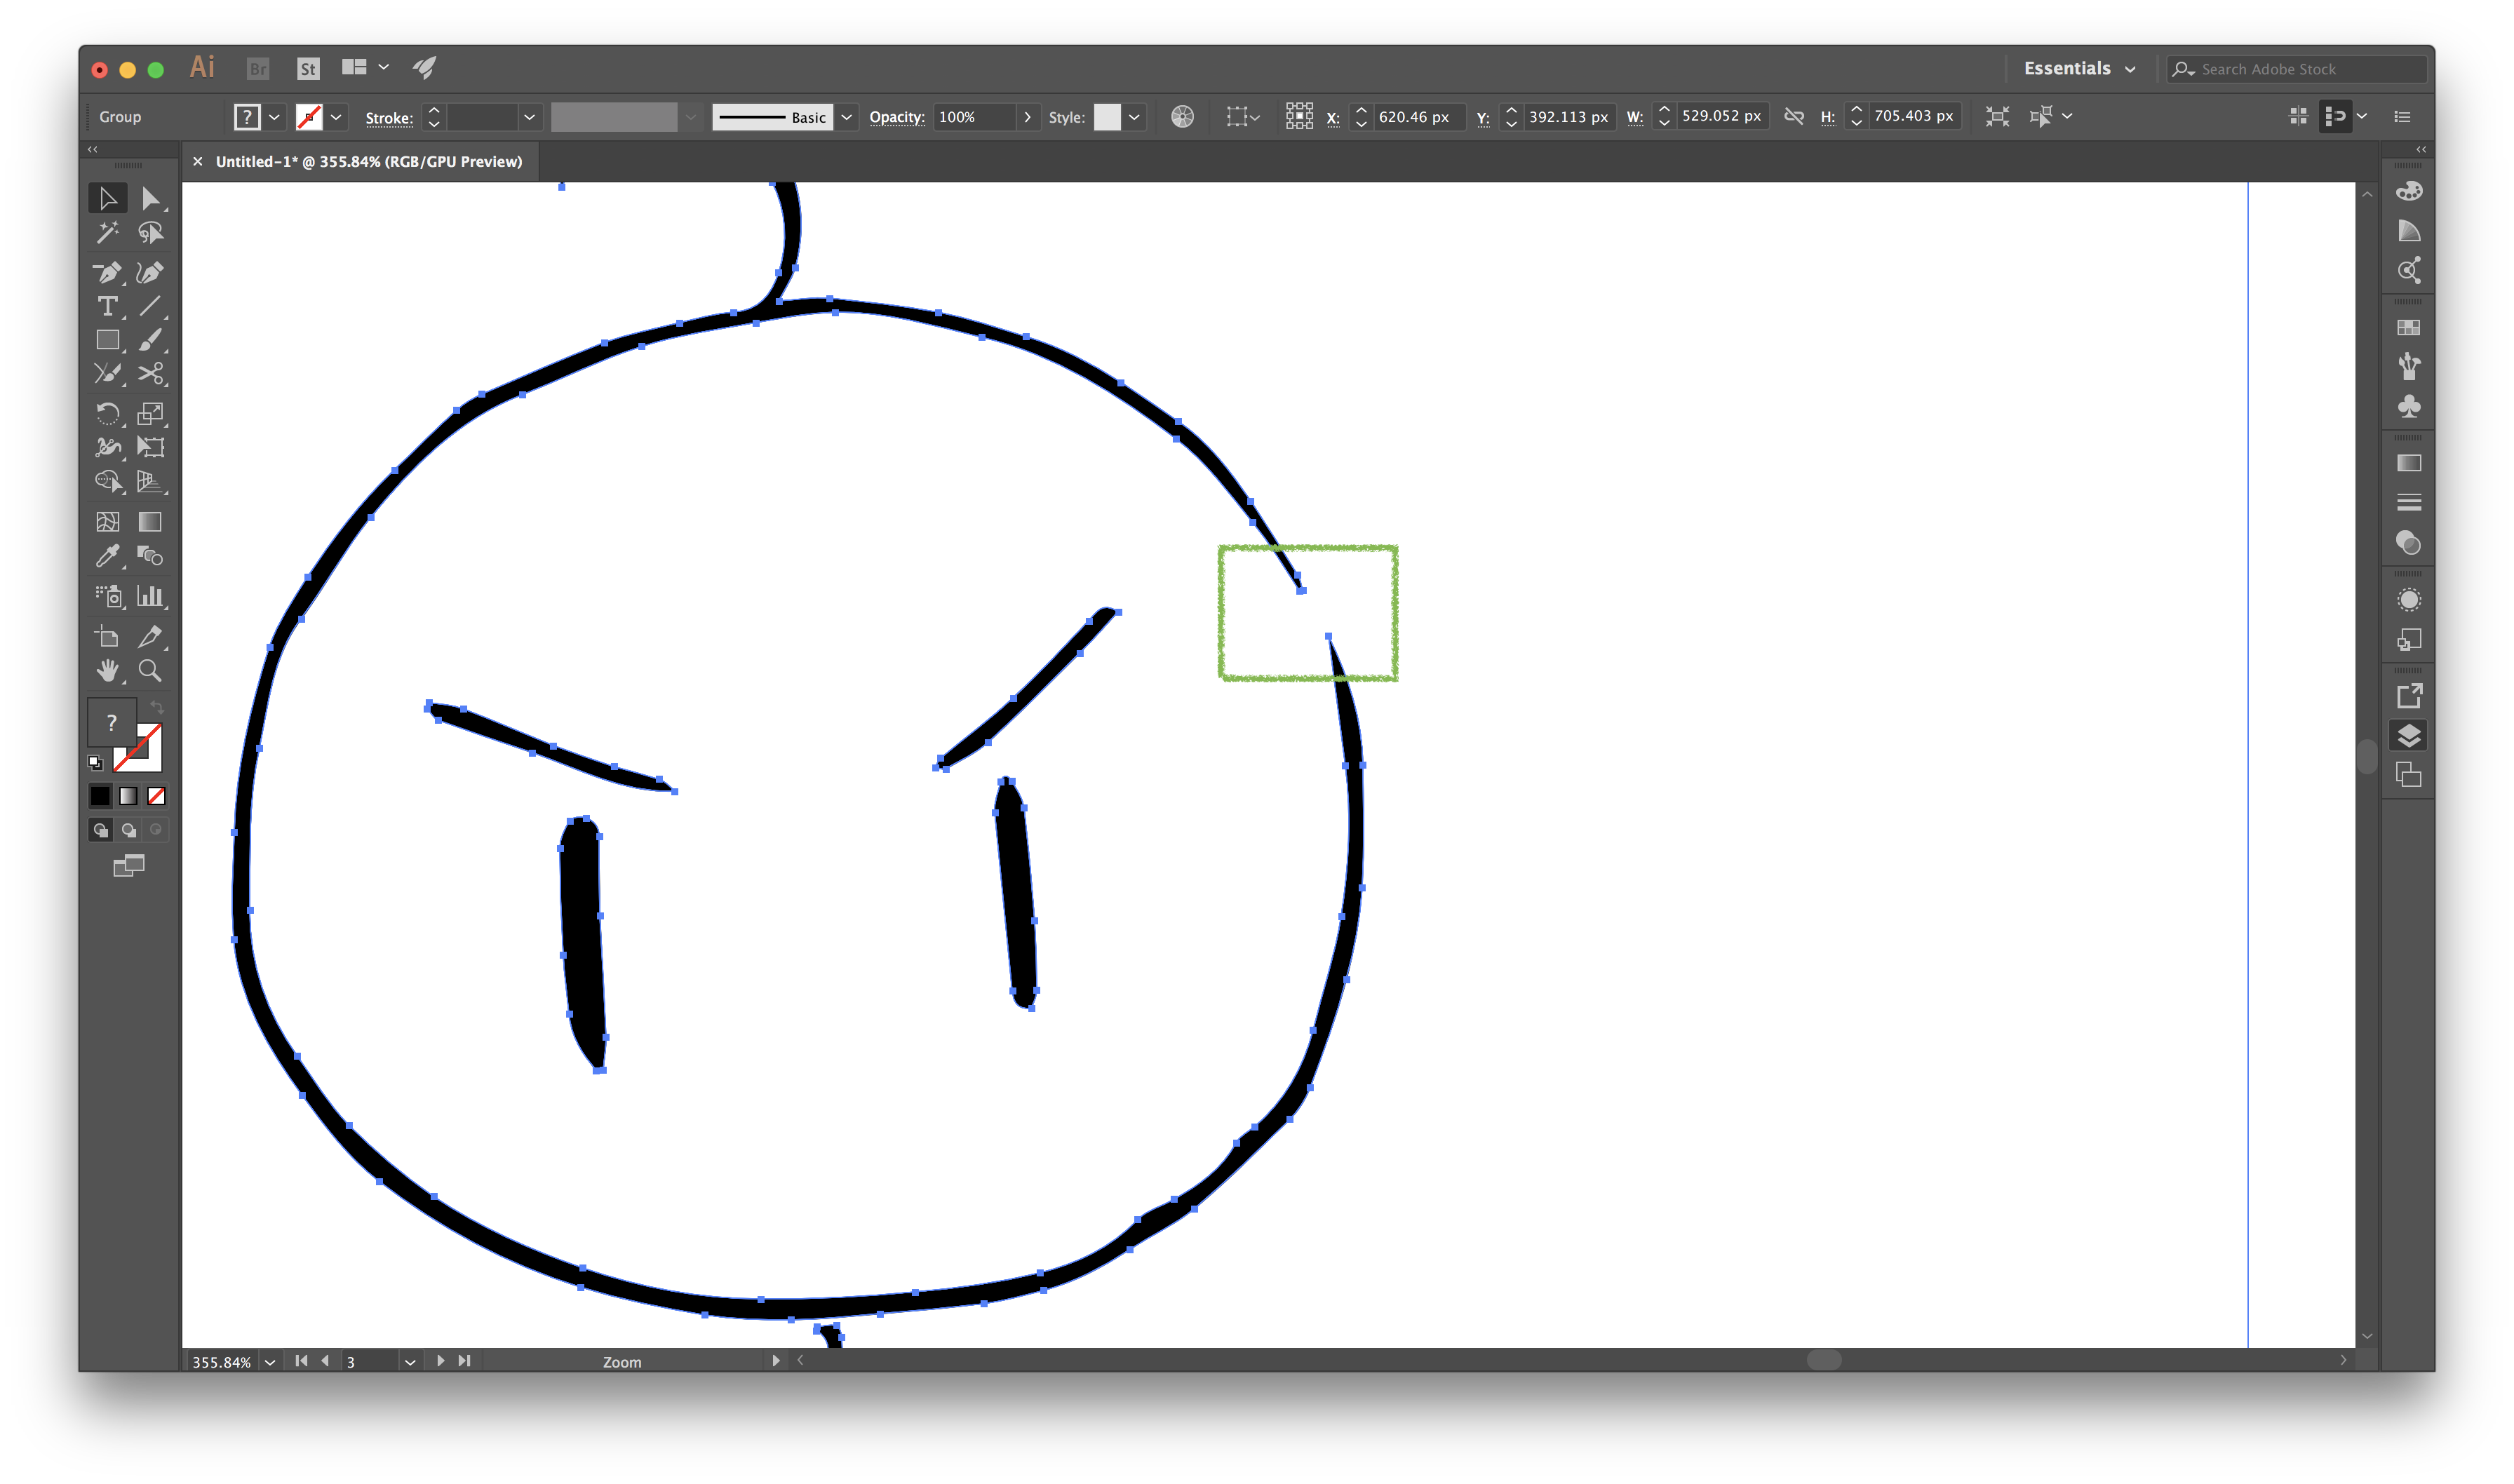 3 vector illustrator. How to join the